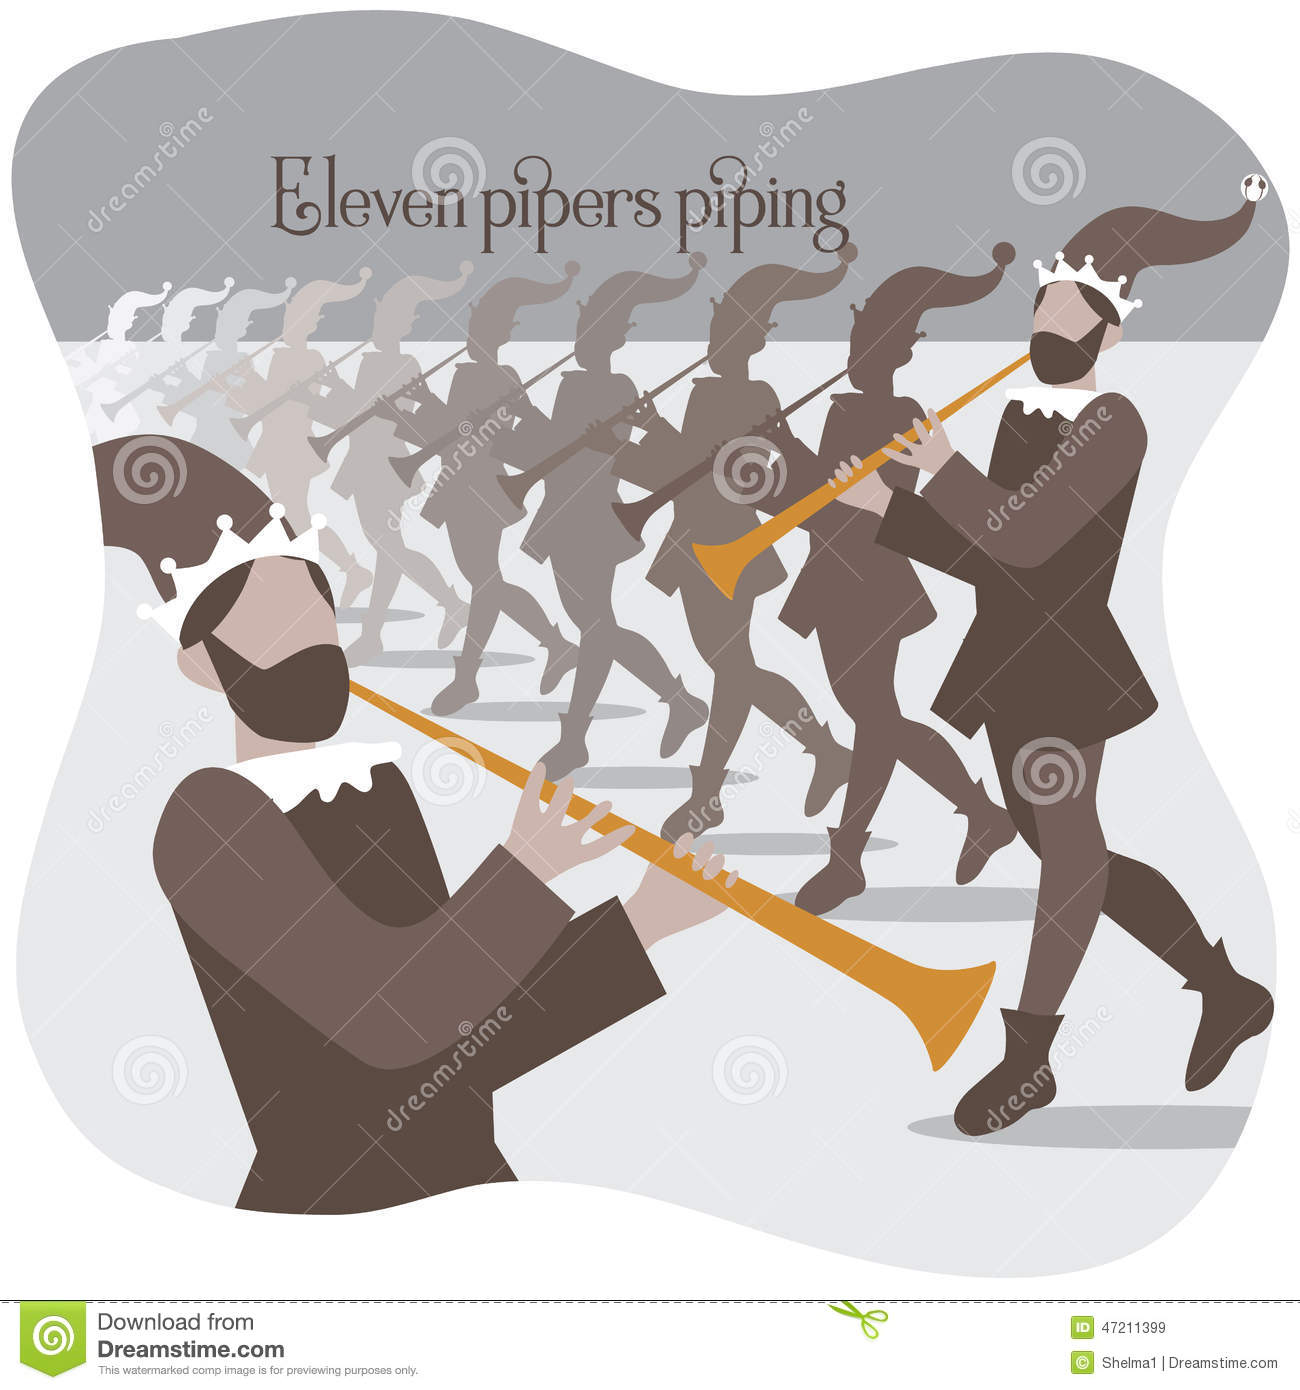 Eleven Pipers Piping Twelve Days Of Christmas Stock Vector - Image ...